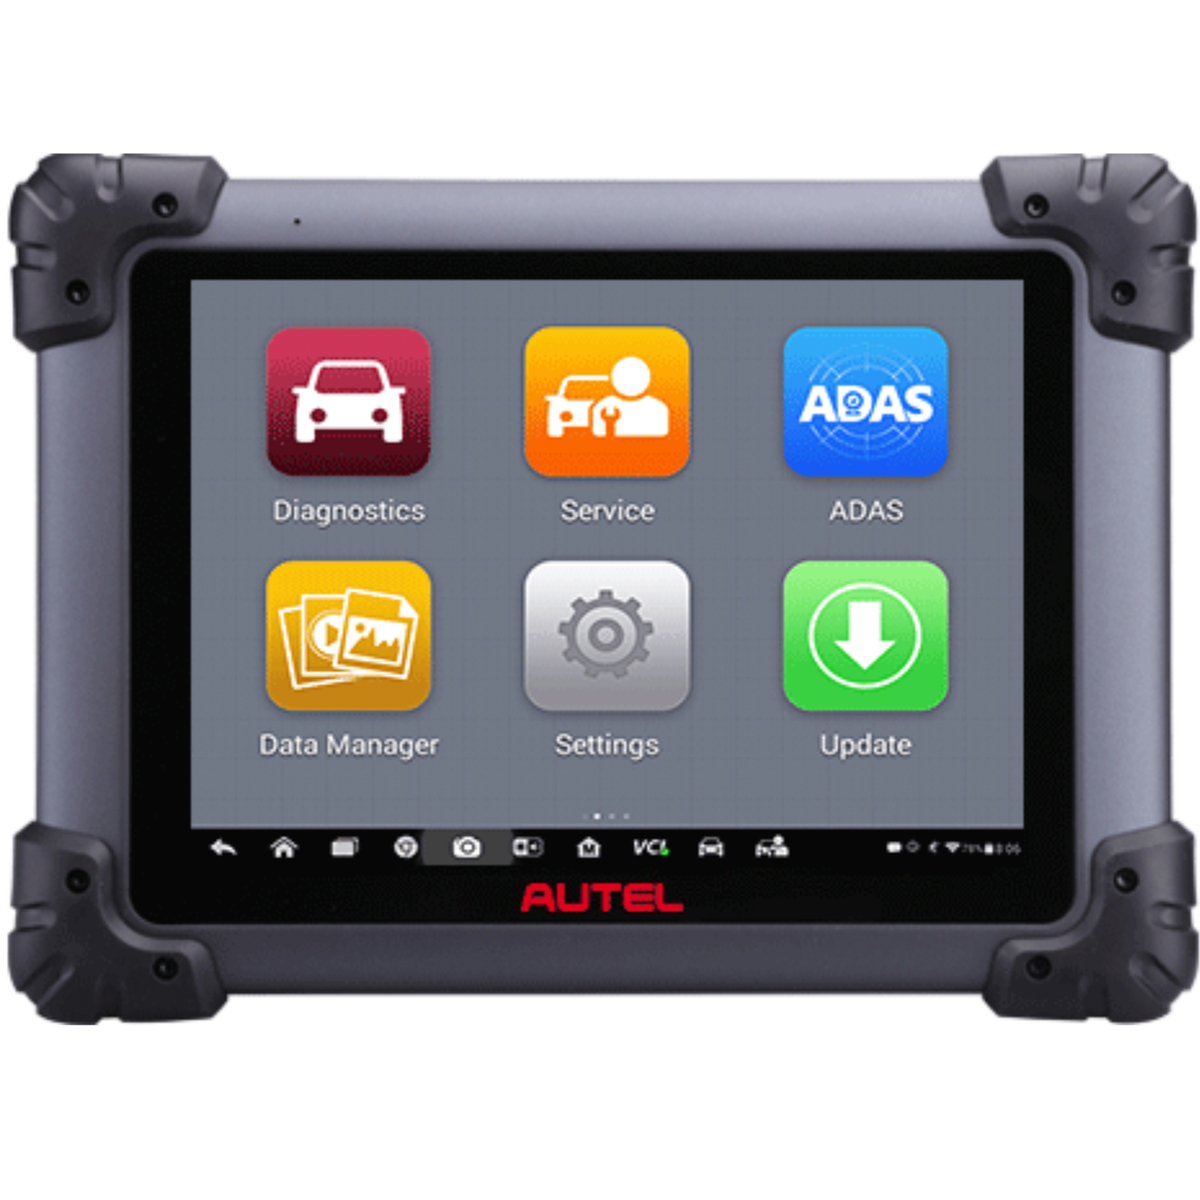 Autel MS908S Diagnostic Scan Tool